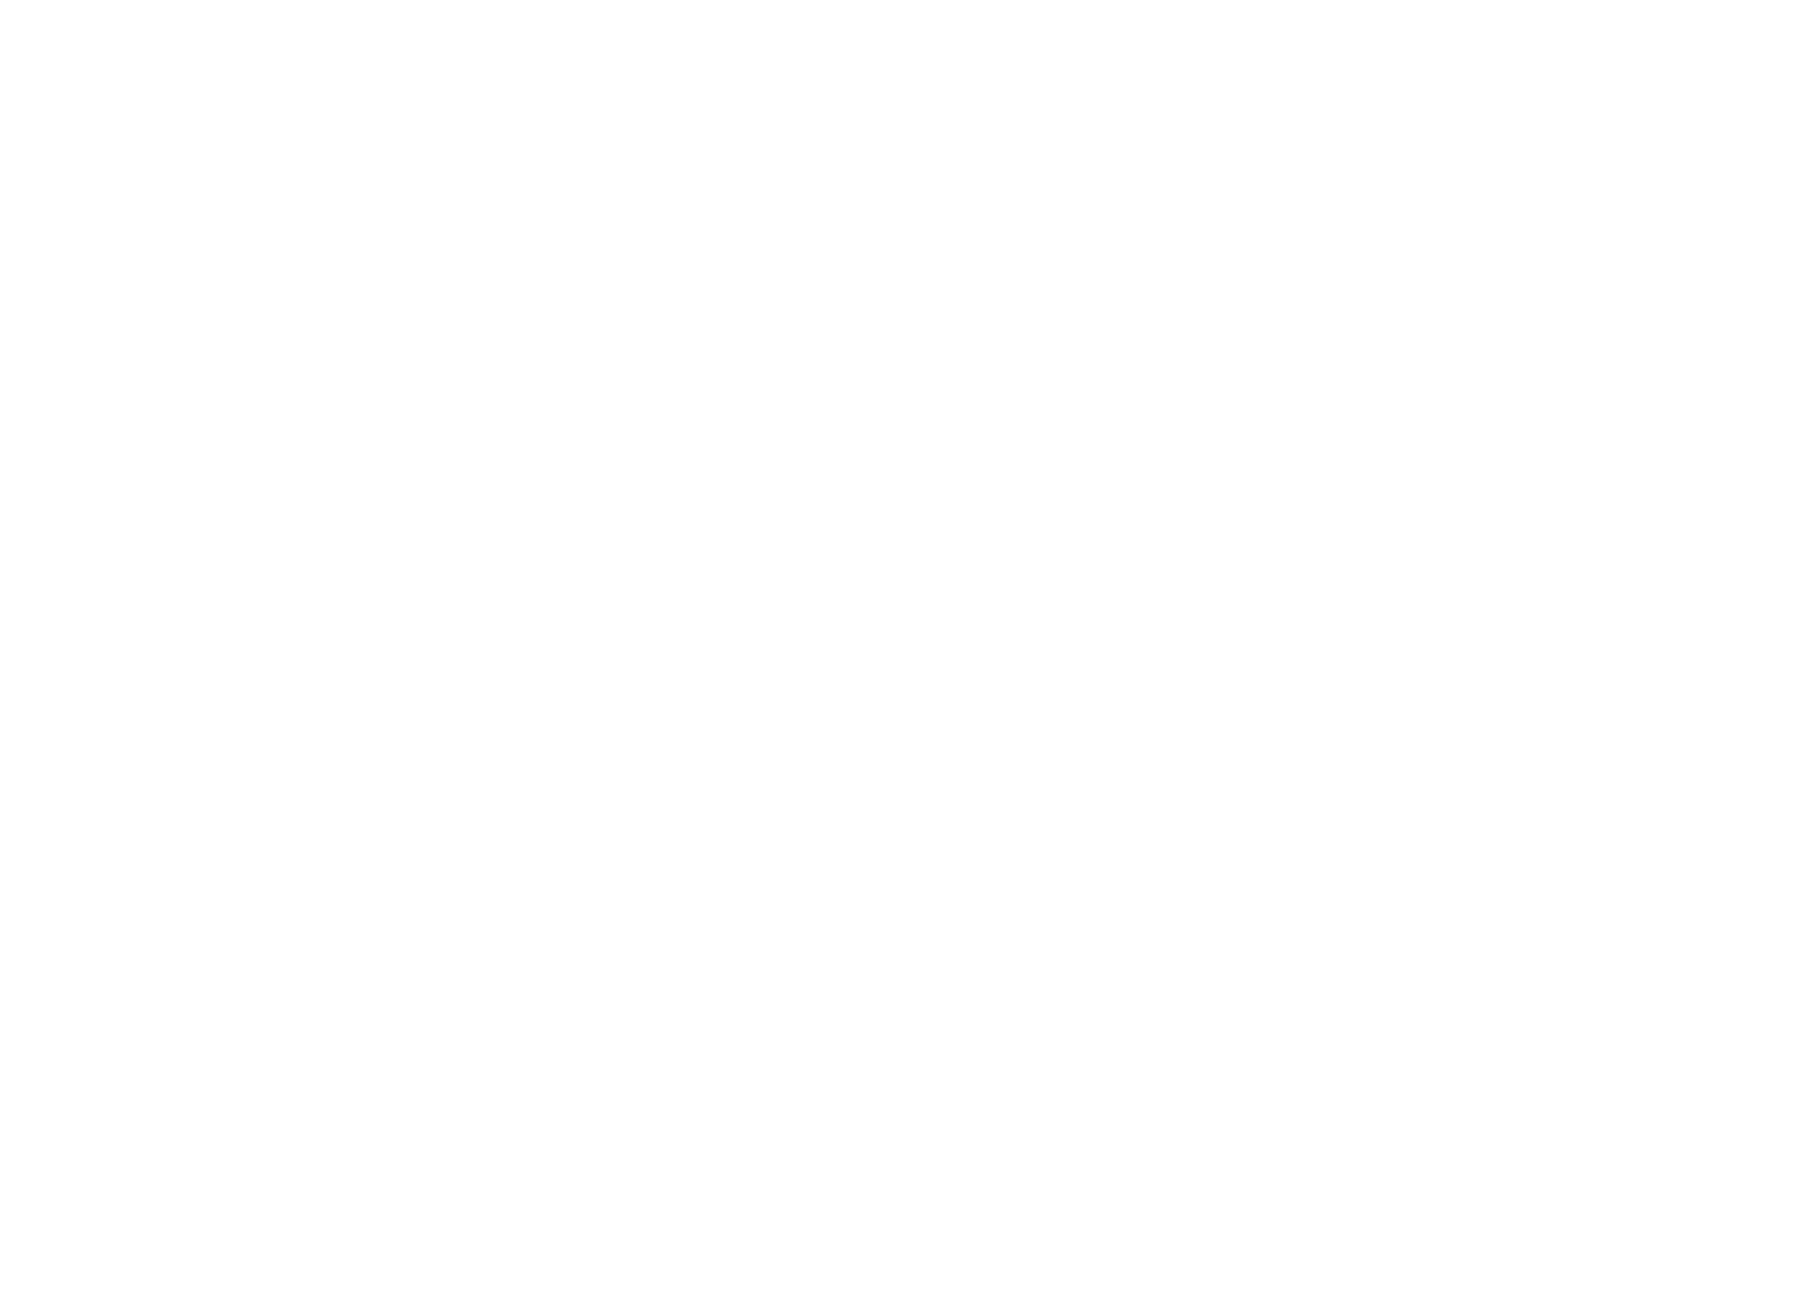 Certified Mold Inspector | Home inspections mold inspections commercial inspections | Inspector Catch-it® providing Certified Home Inspection, Certifed Mold Testing, Certified Mold Inspection, and Commercial Inspection in Lancaster CA, Palmdale CA, Littlerock CA, Santa Clarita CA, Valencia CA, Los Angeles CA, Rosamond CA, Edwards CA, and Acton CA